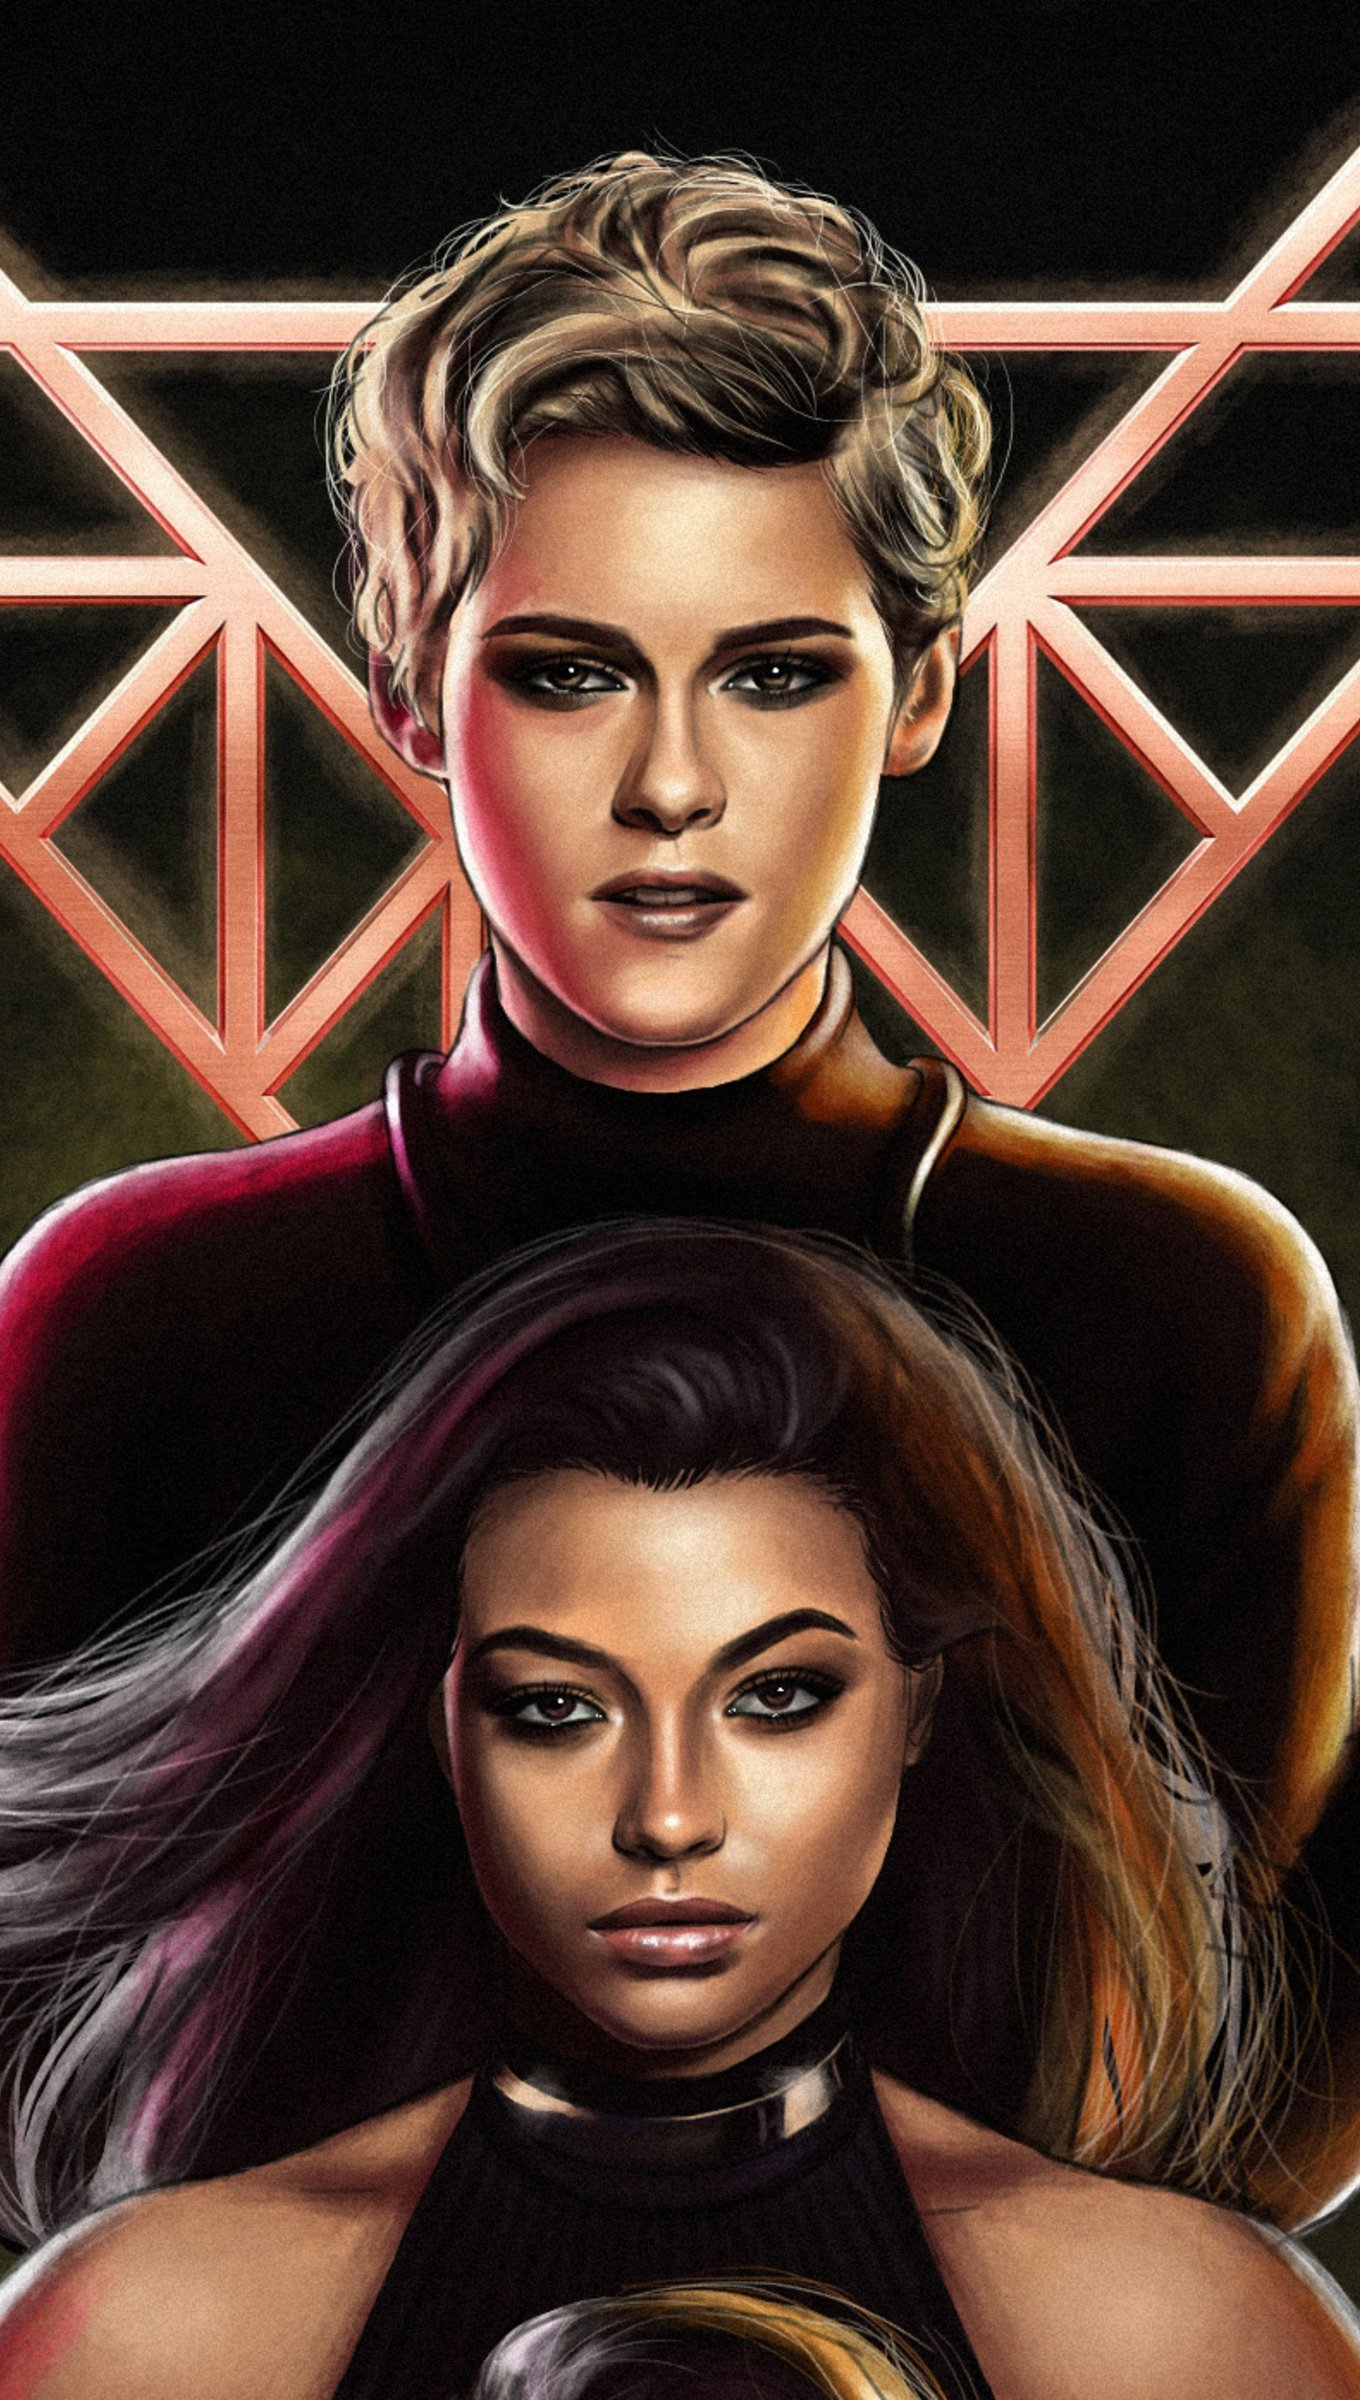 Wallpaper Sabrina and Jane in Charlie's Angels 2019 Vertical